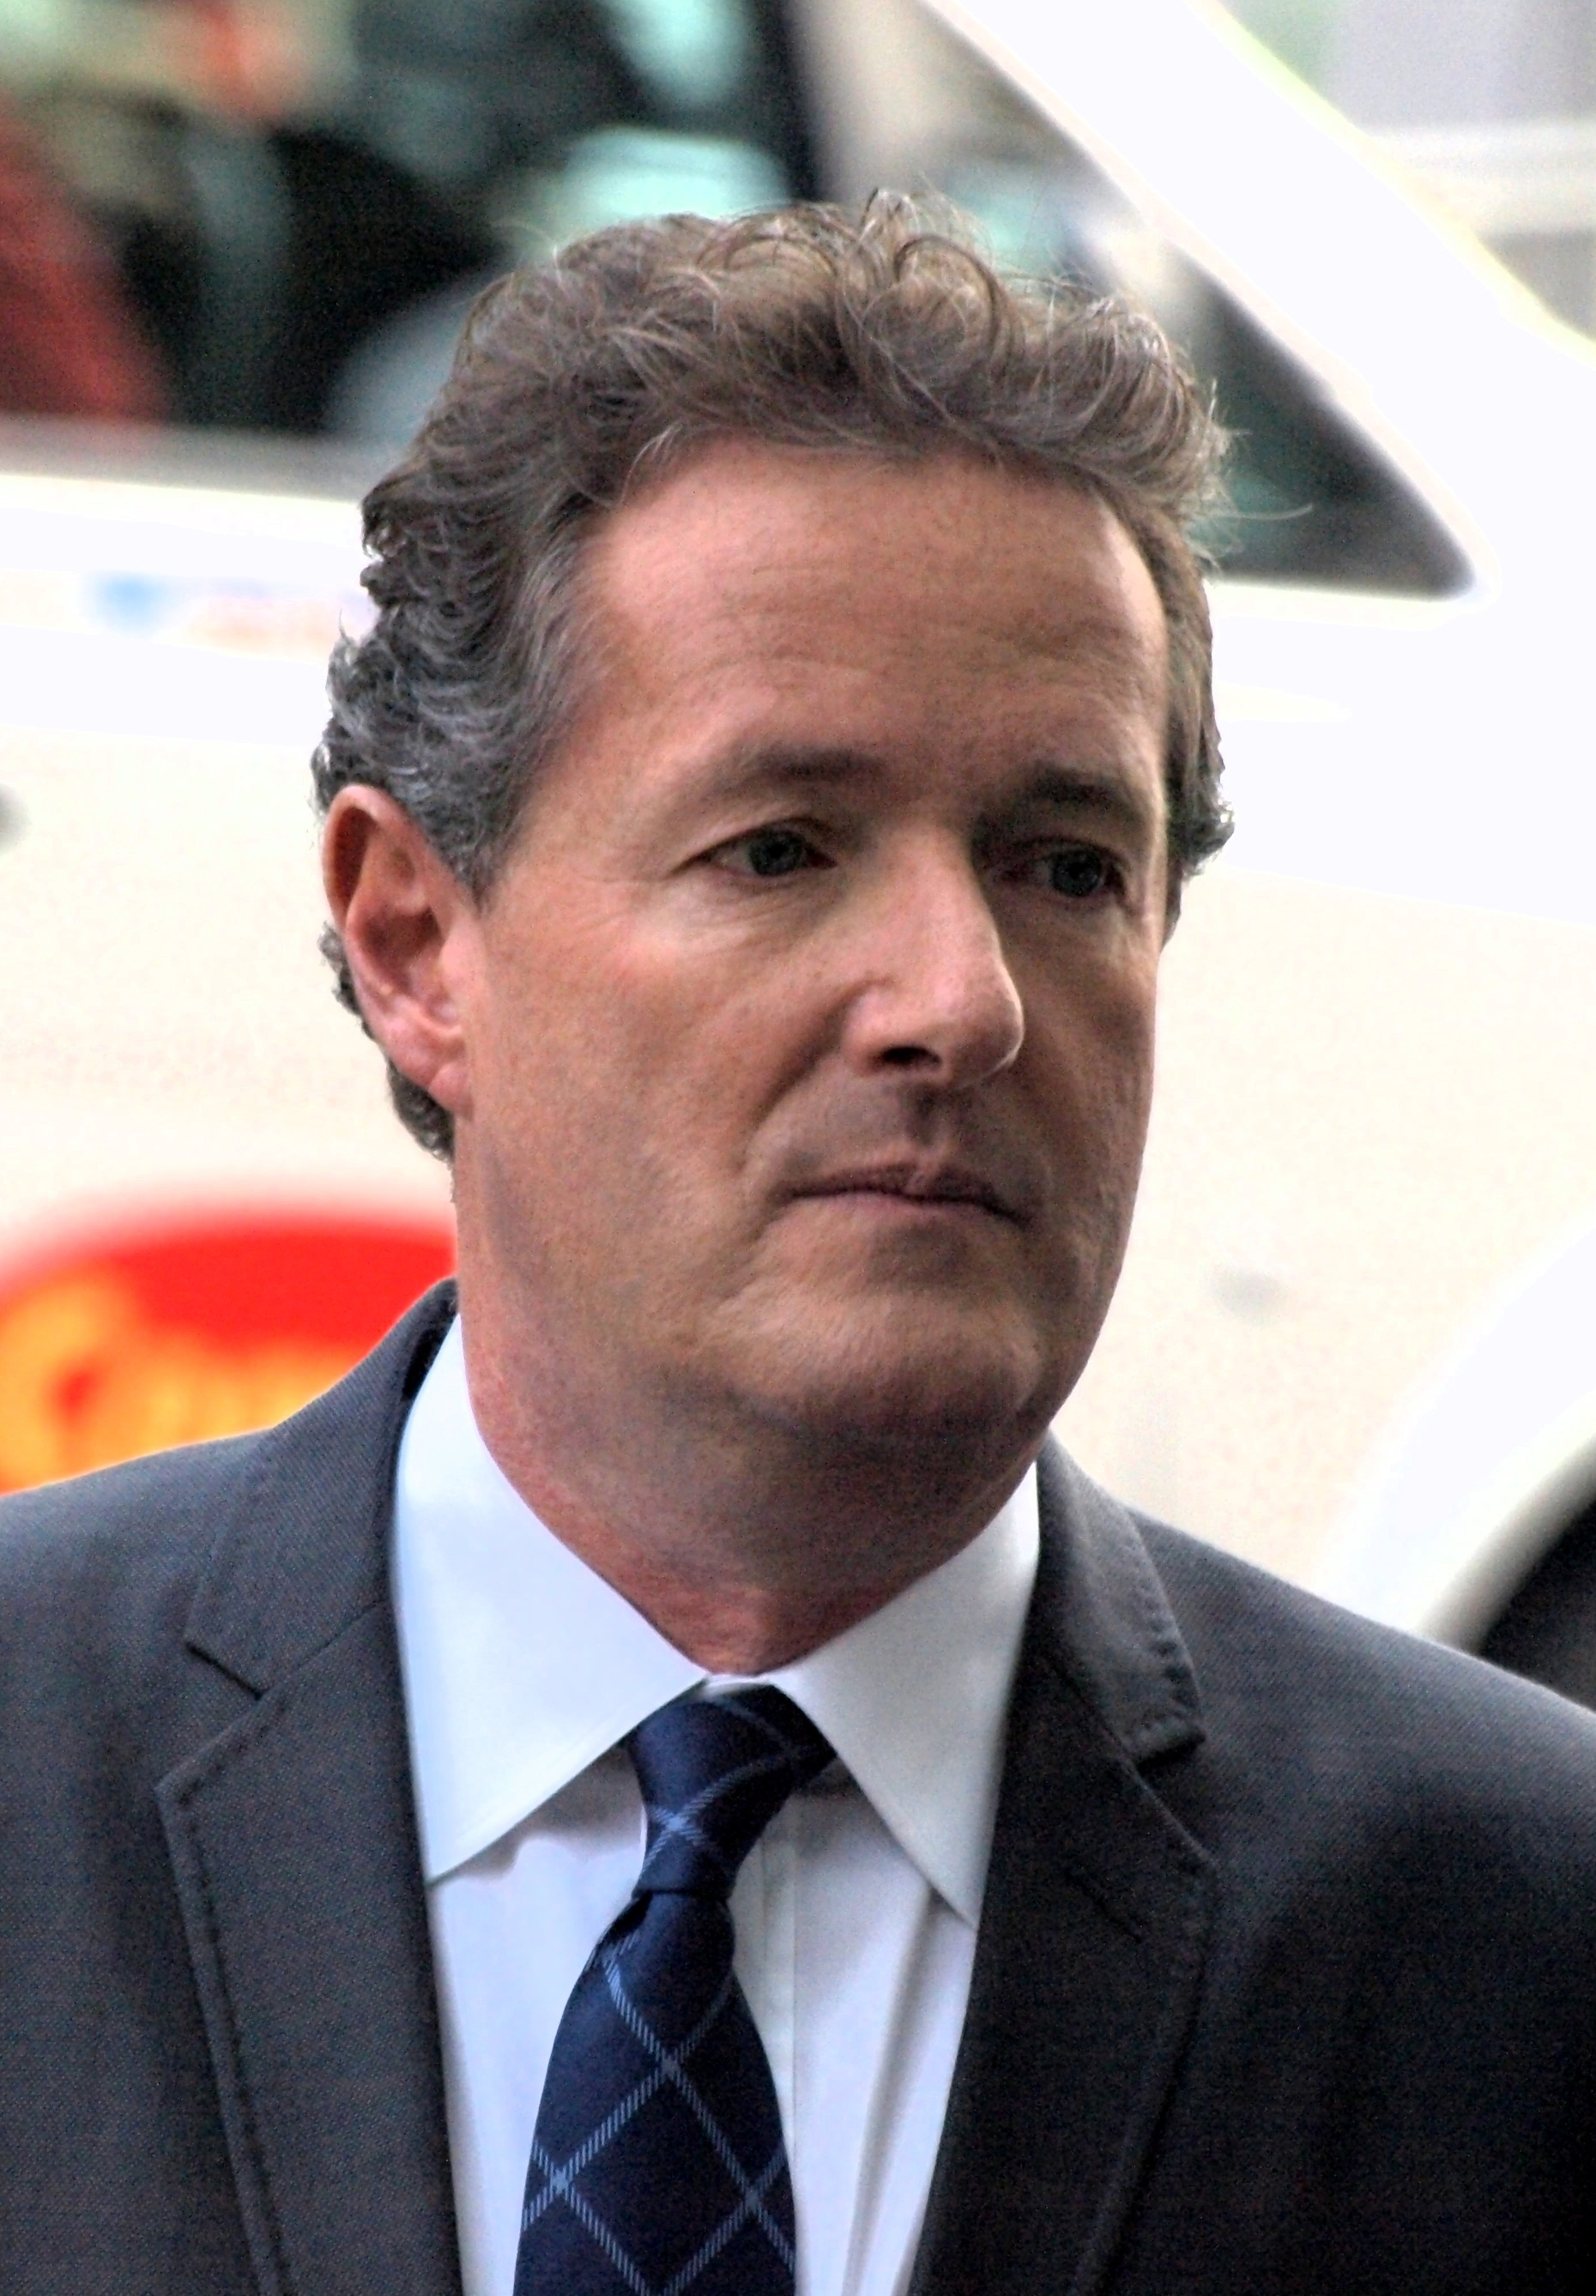 File Piers Morgan 2011 Cropped Jpg Wikimedia Commons